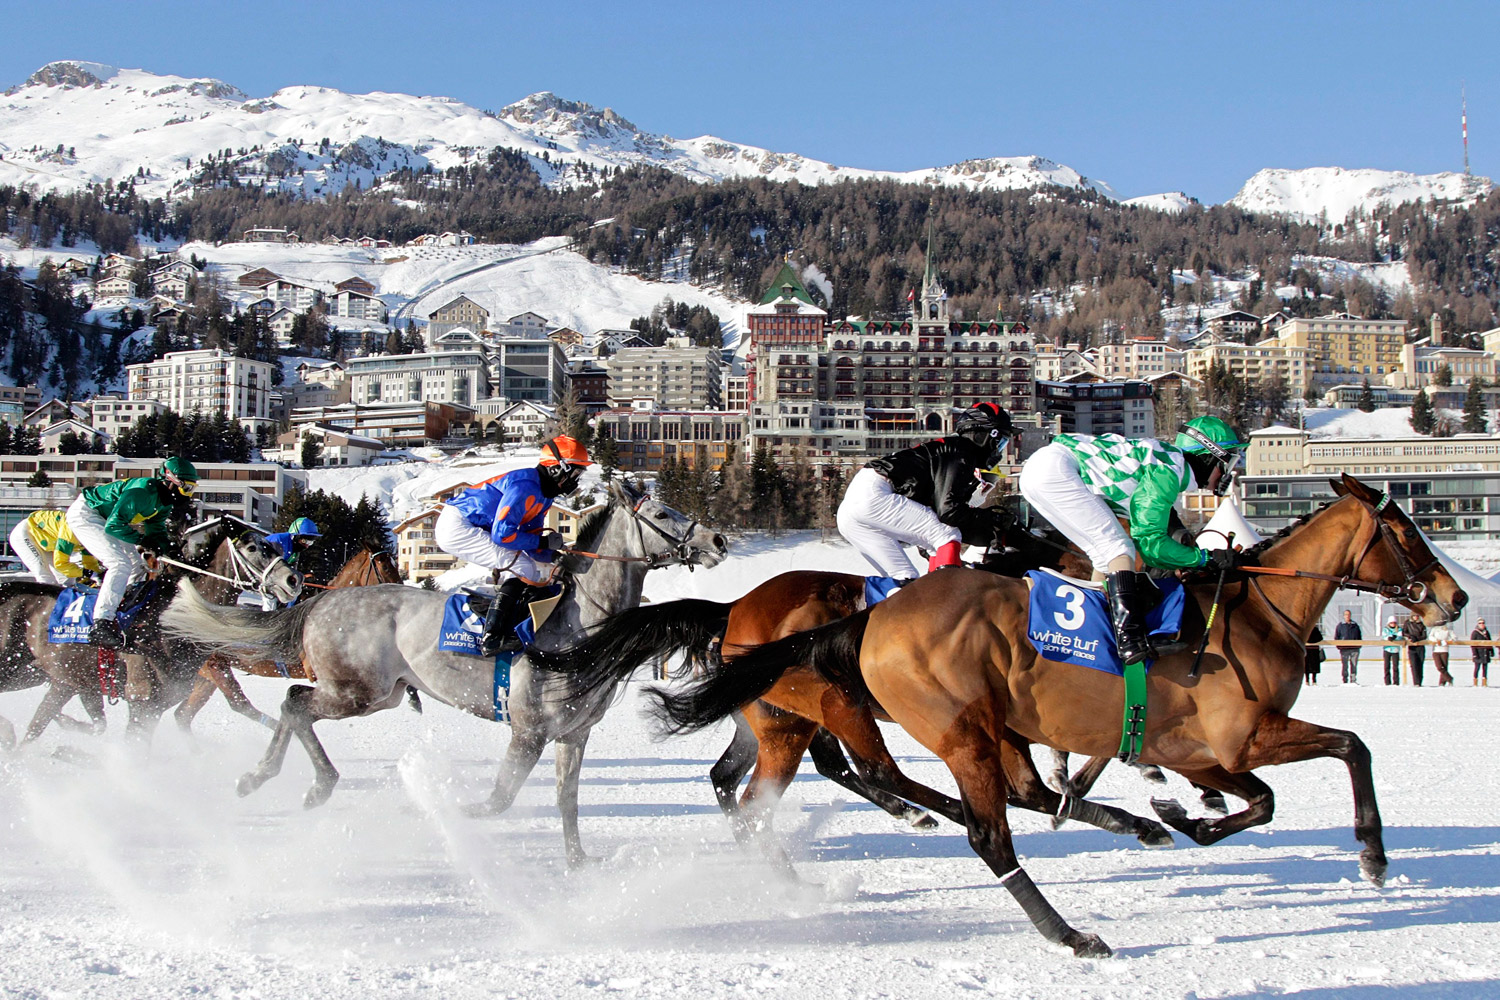 February 5, 2012. Riders and horses compete during the Grand Prix American Airlines on the frozen Lake on the first weekend of the White Turf races in St. Moritz, Switzerland.